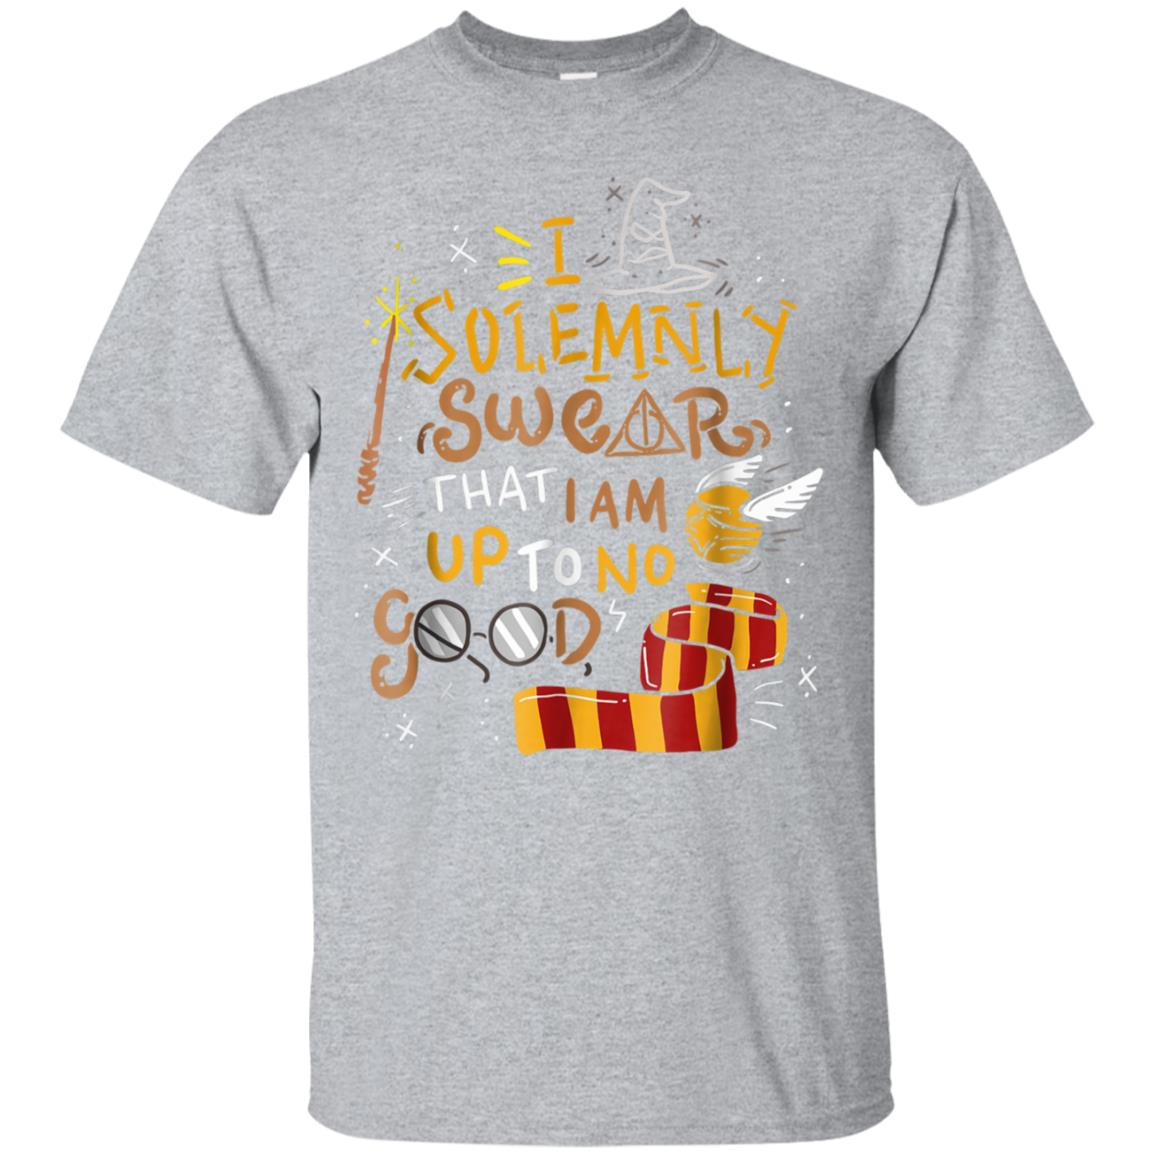 I Solemnly Swear That I Am Up To No Good - Quote T-Shirt 99promocode